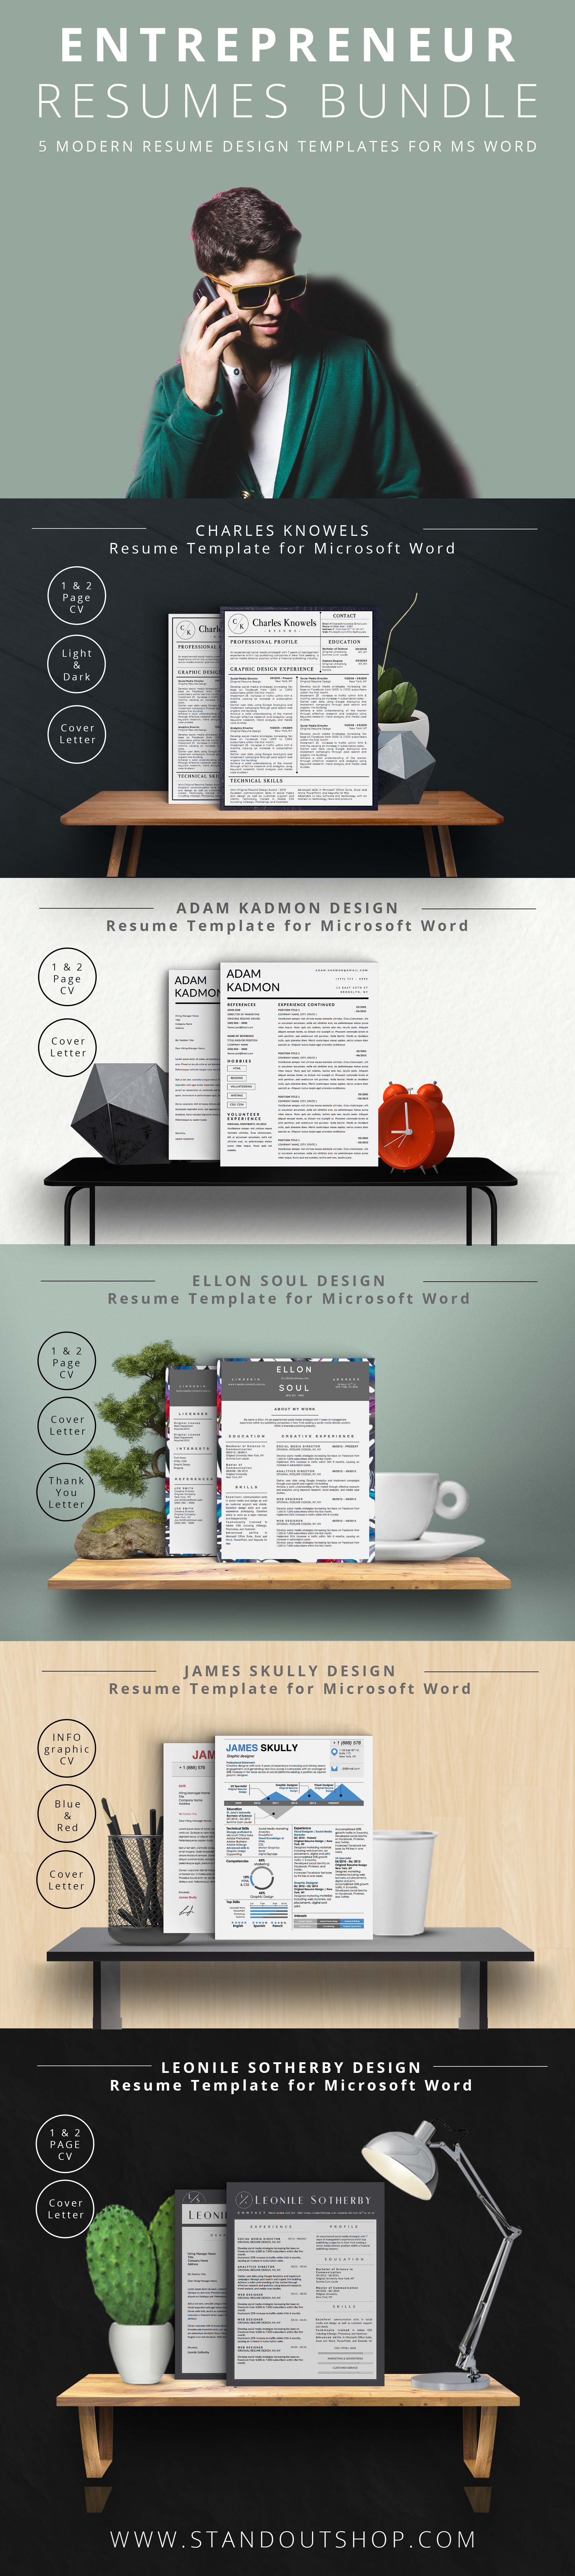 Entrepreneur Resume Collection For Microsoft Word Download  Modern